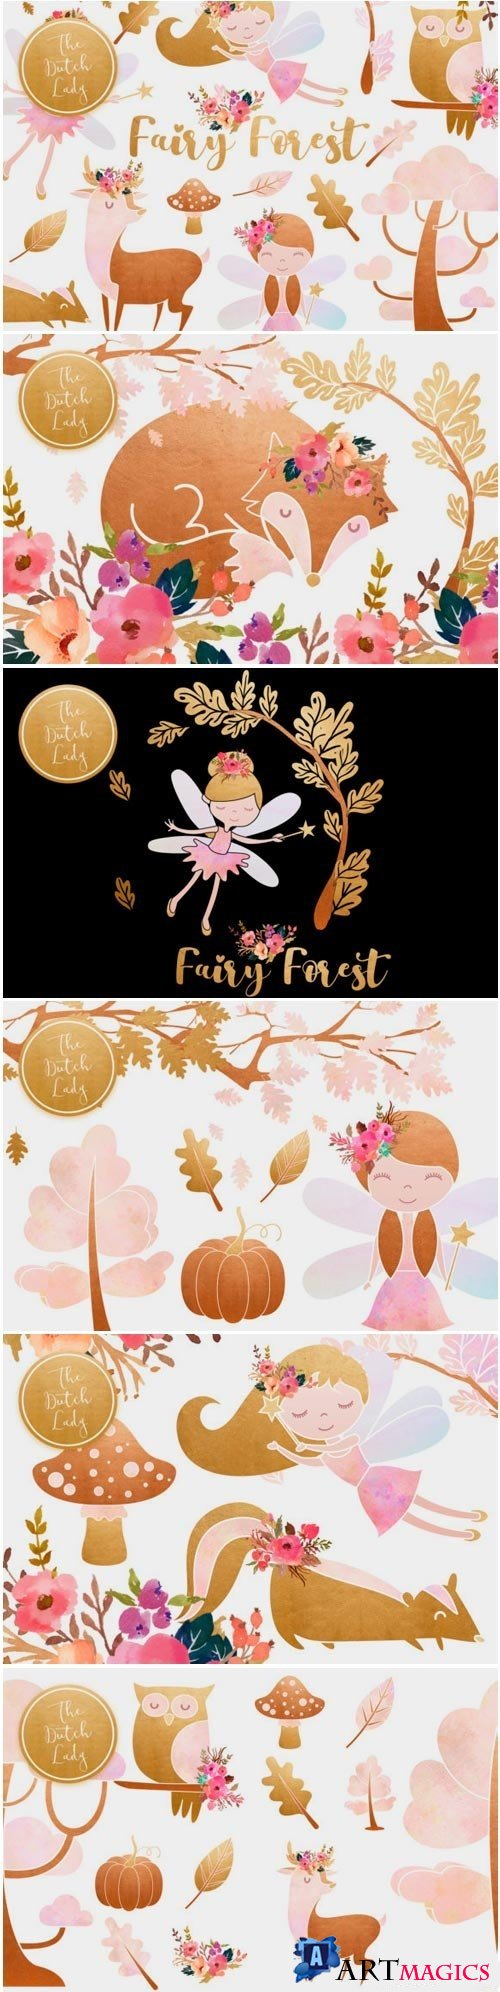 Enchanted Fairy Forest Clipart Set - 3913544